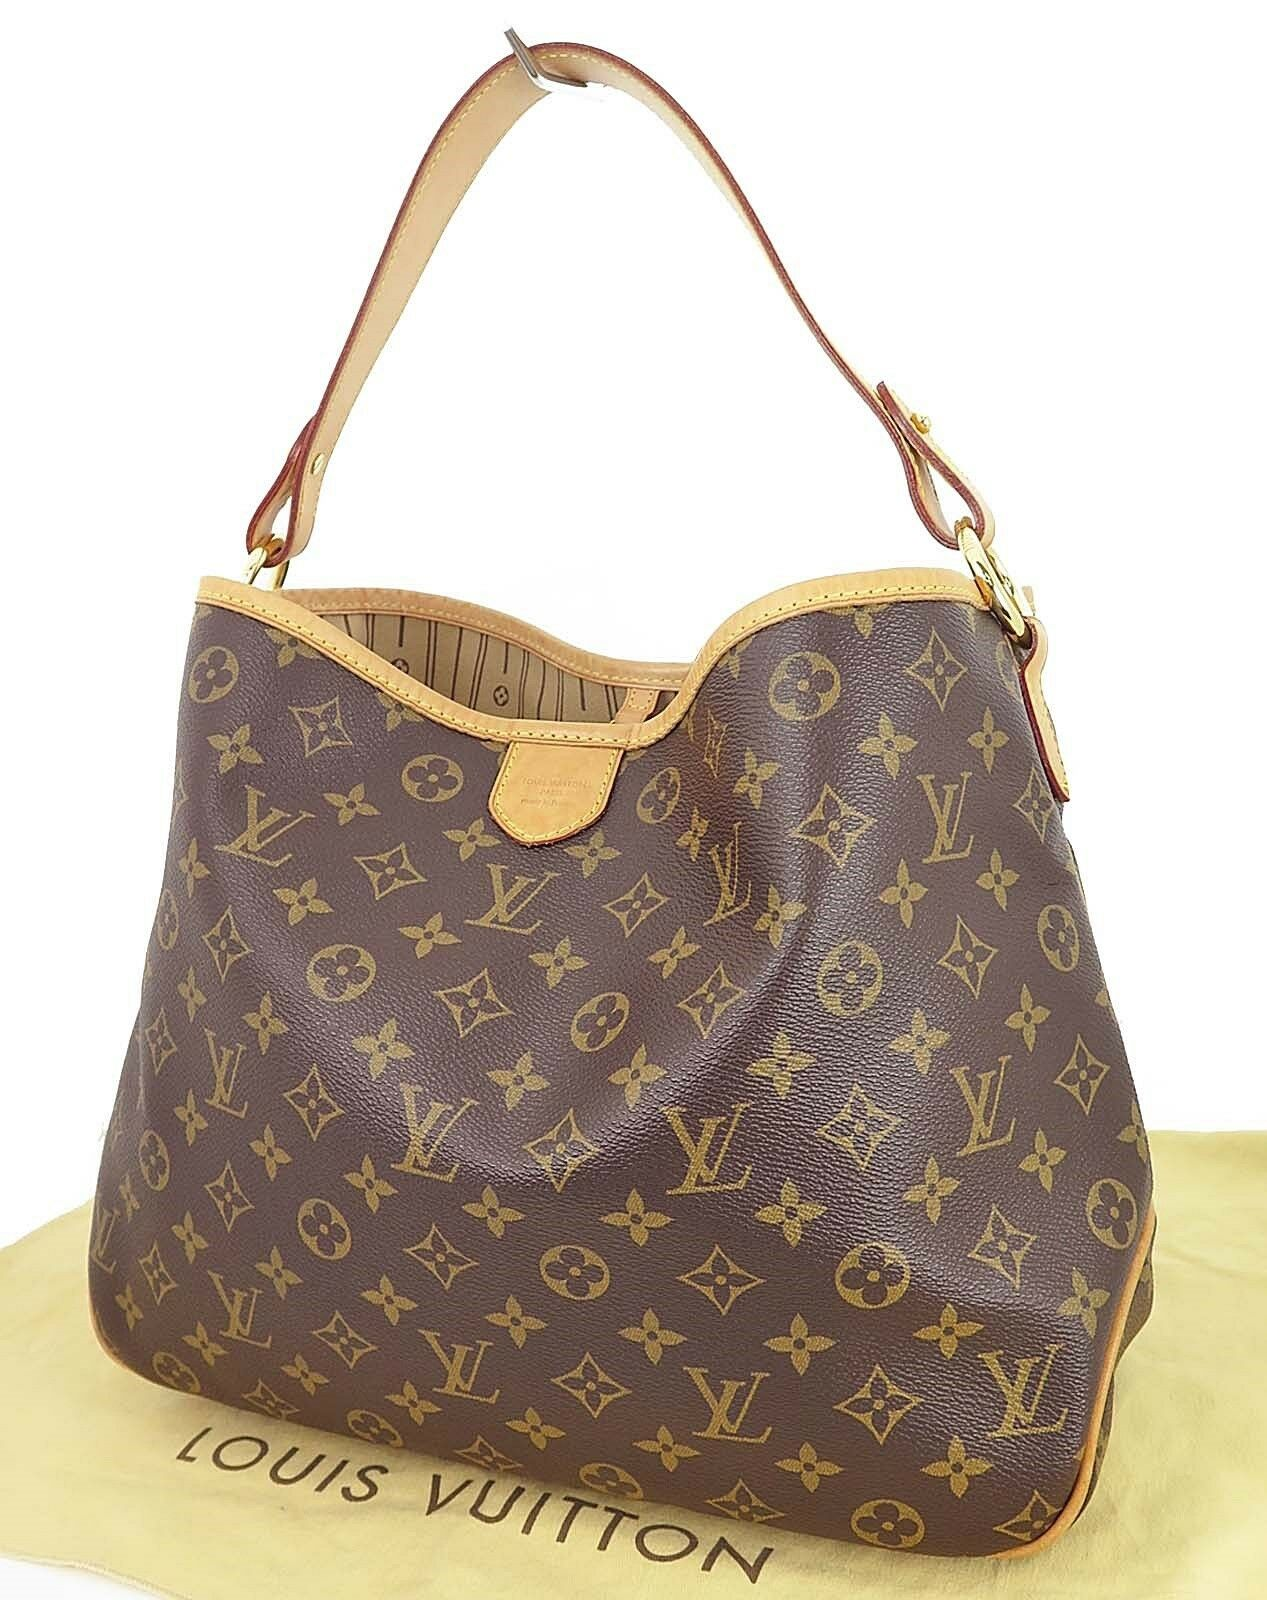 Authentic LOUIS VUITTON Delightful PM Monogram Shoulder Bag Purse #18980